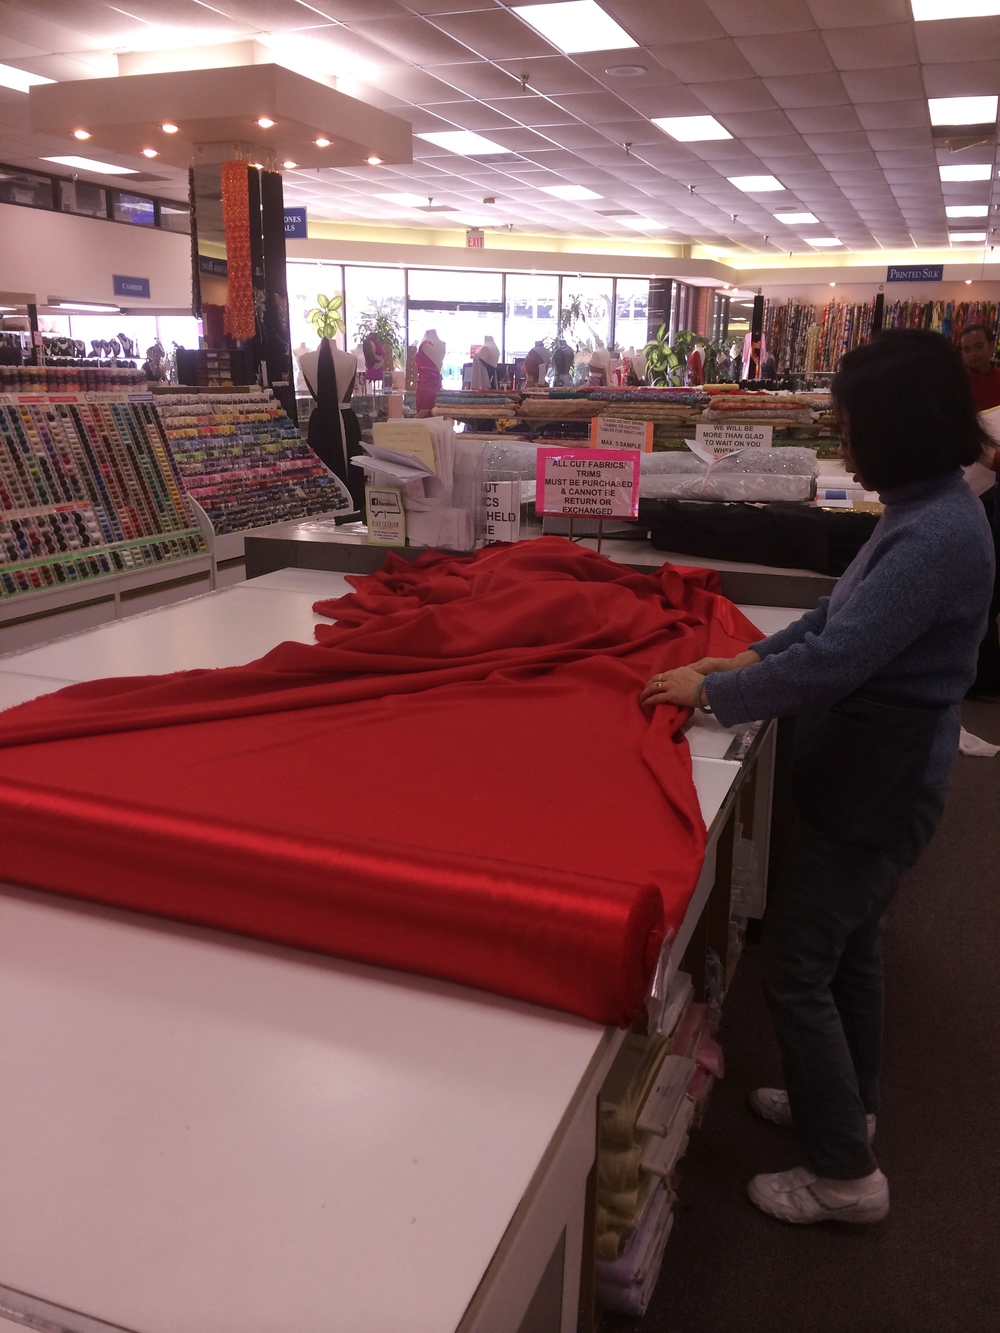 Rolling out yards and yards of red for our next collection